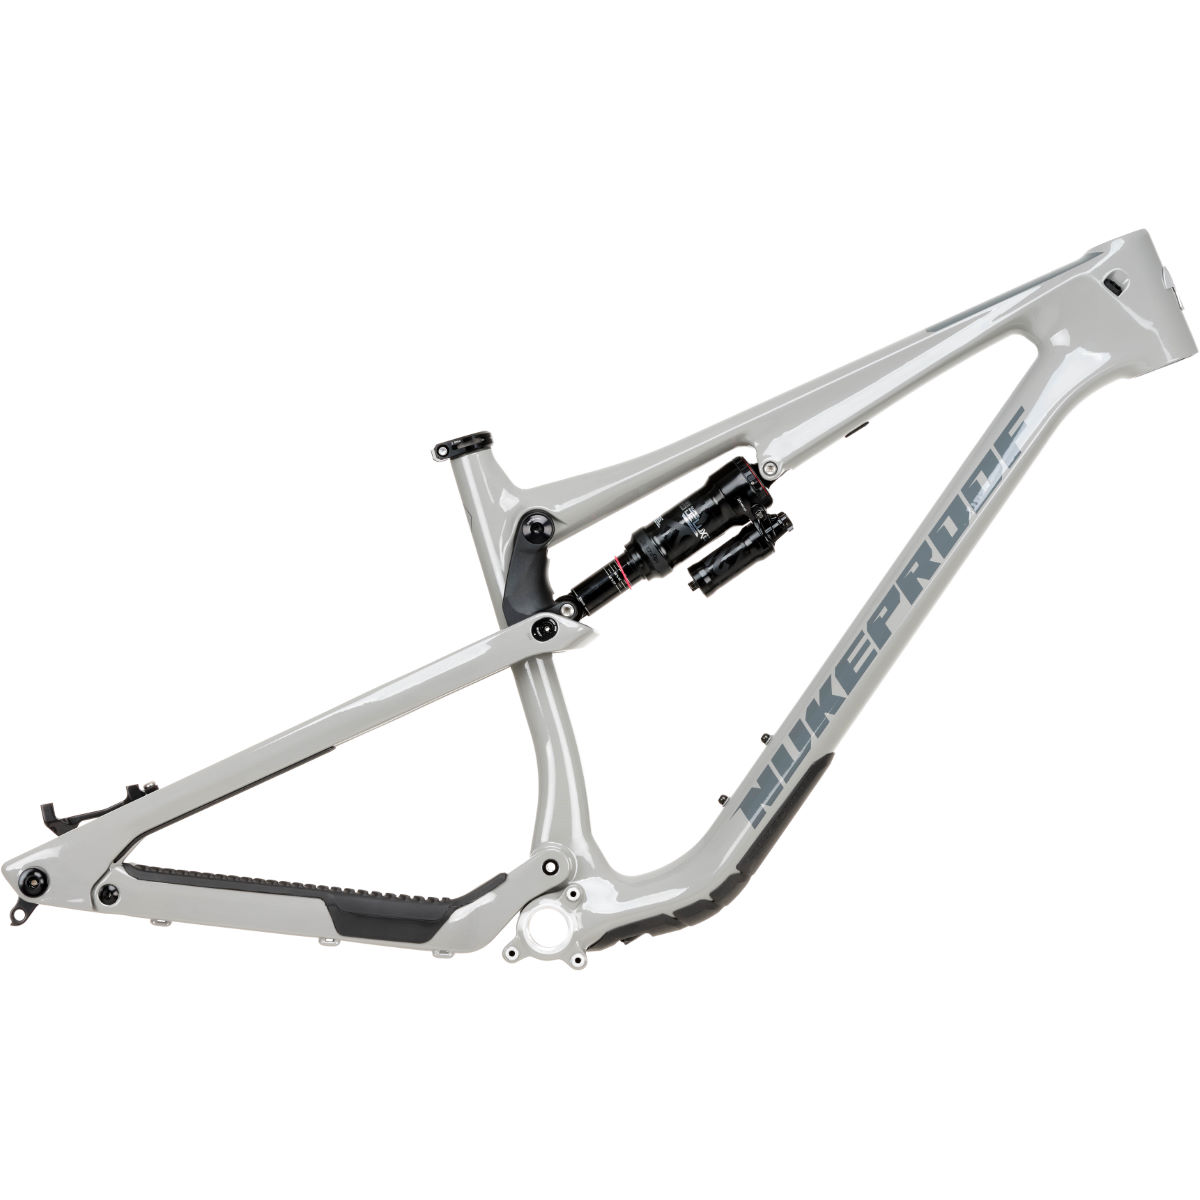 Nukeproof Nukeproof Reactor 275 Carbon Mountain Bike Frame (2020)   Full Sus Mountain Bike Frames